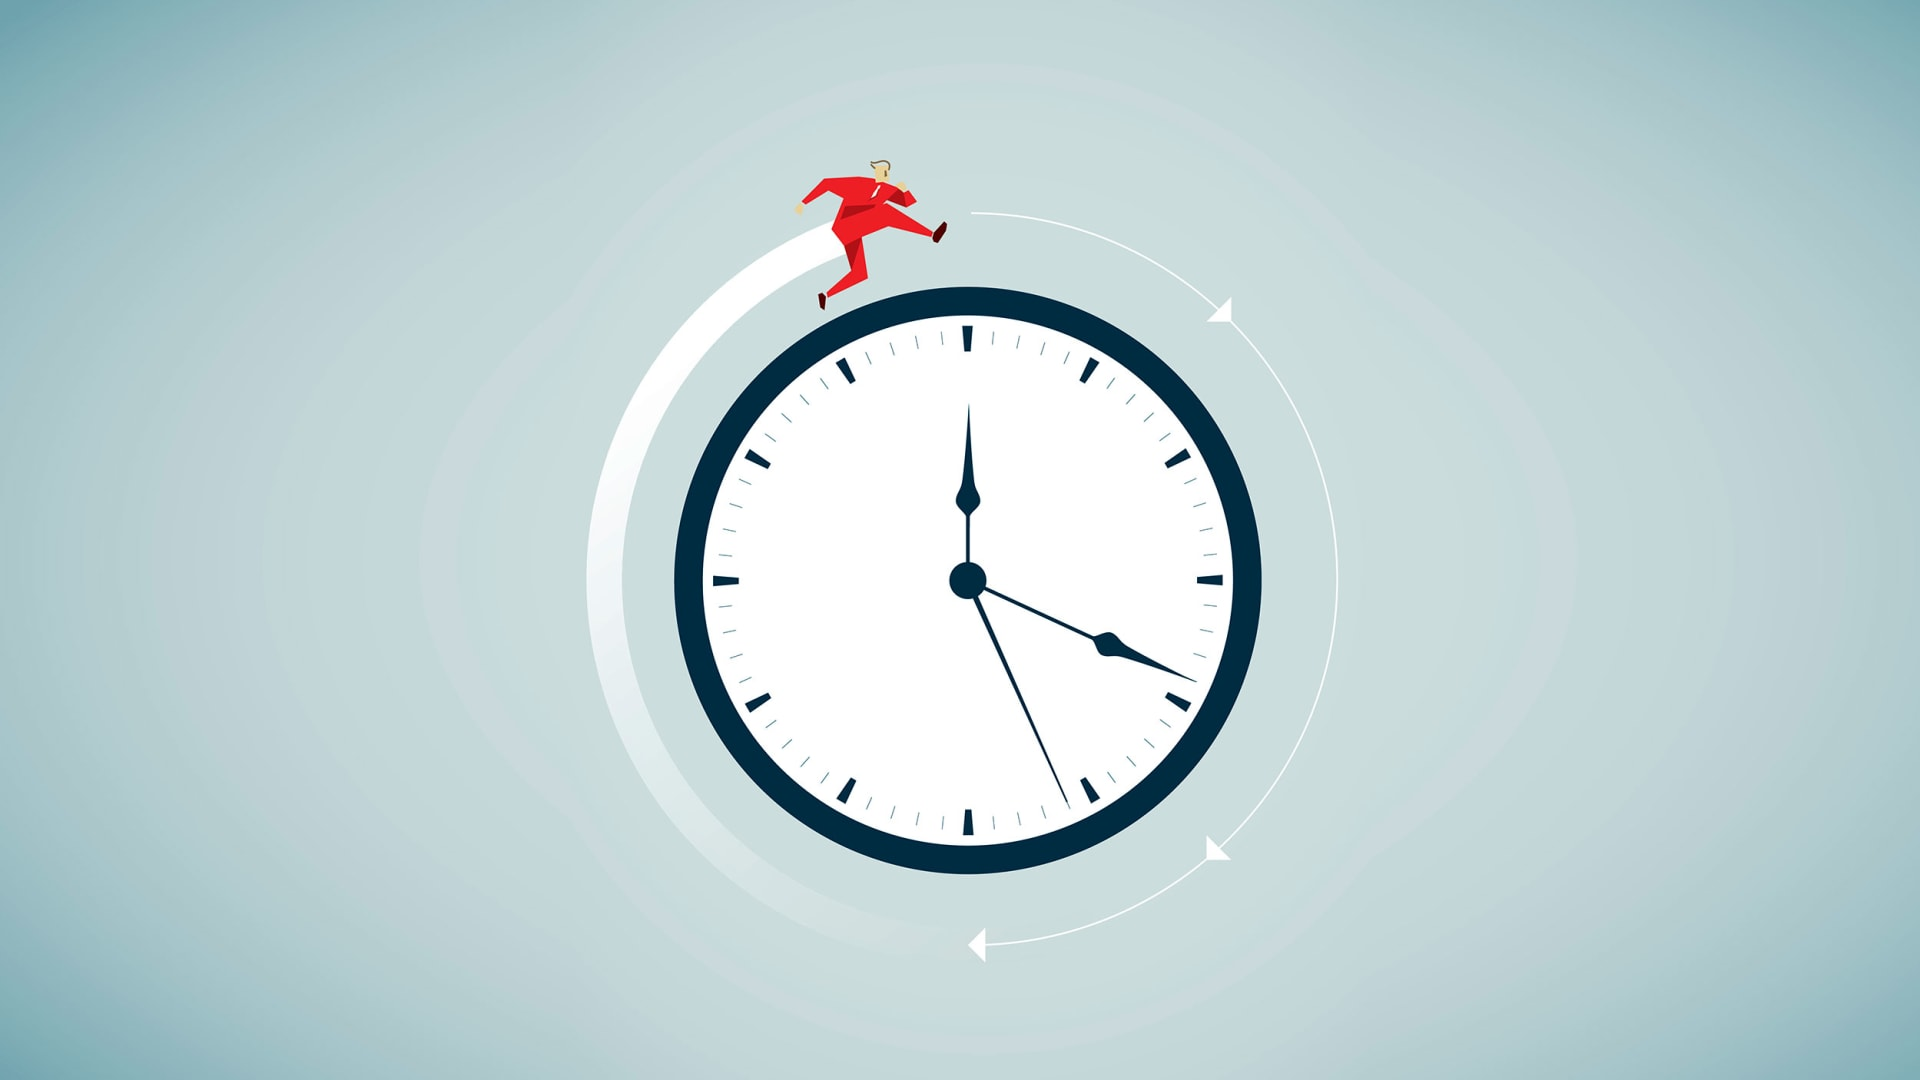 745,000 People a Year Die From Working Long Hours. 3 Ways Your 55-Plus-Hour Weeks Are Killing You